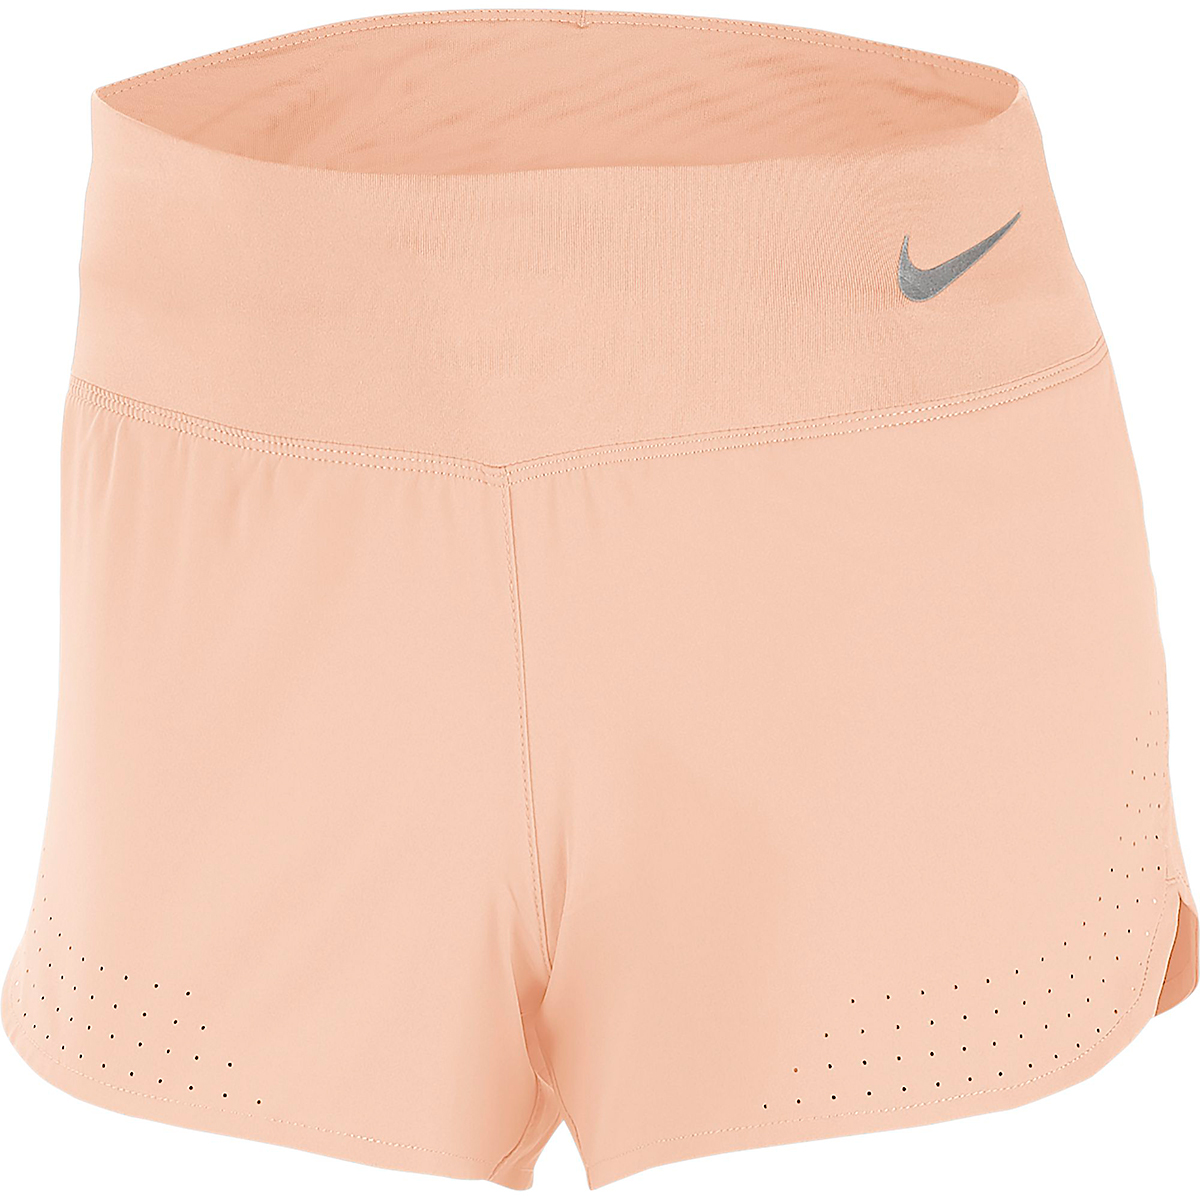 Women's Nike Eclipse Short 3in - Color: Washed Coral - Size: XS, Washed Coral, large, image 1